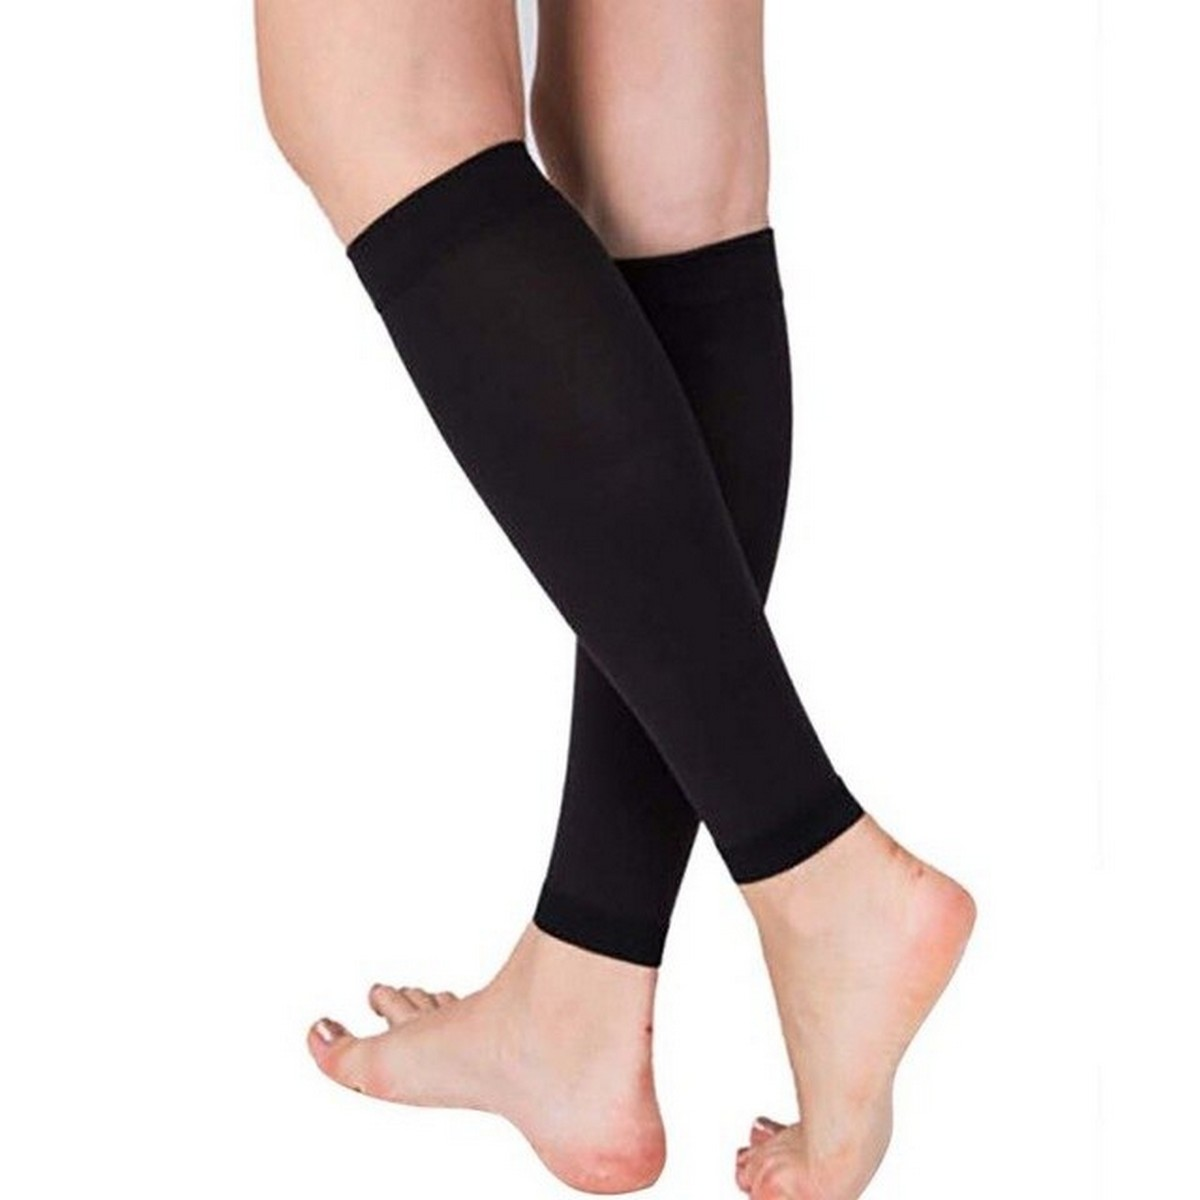 Pair of Summer Protection Legs Sleeves for Football and Hockey Protects from Sunburn